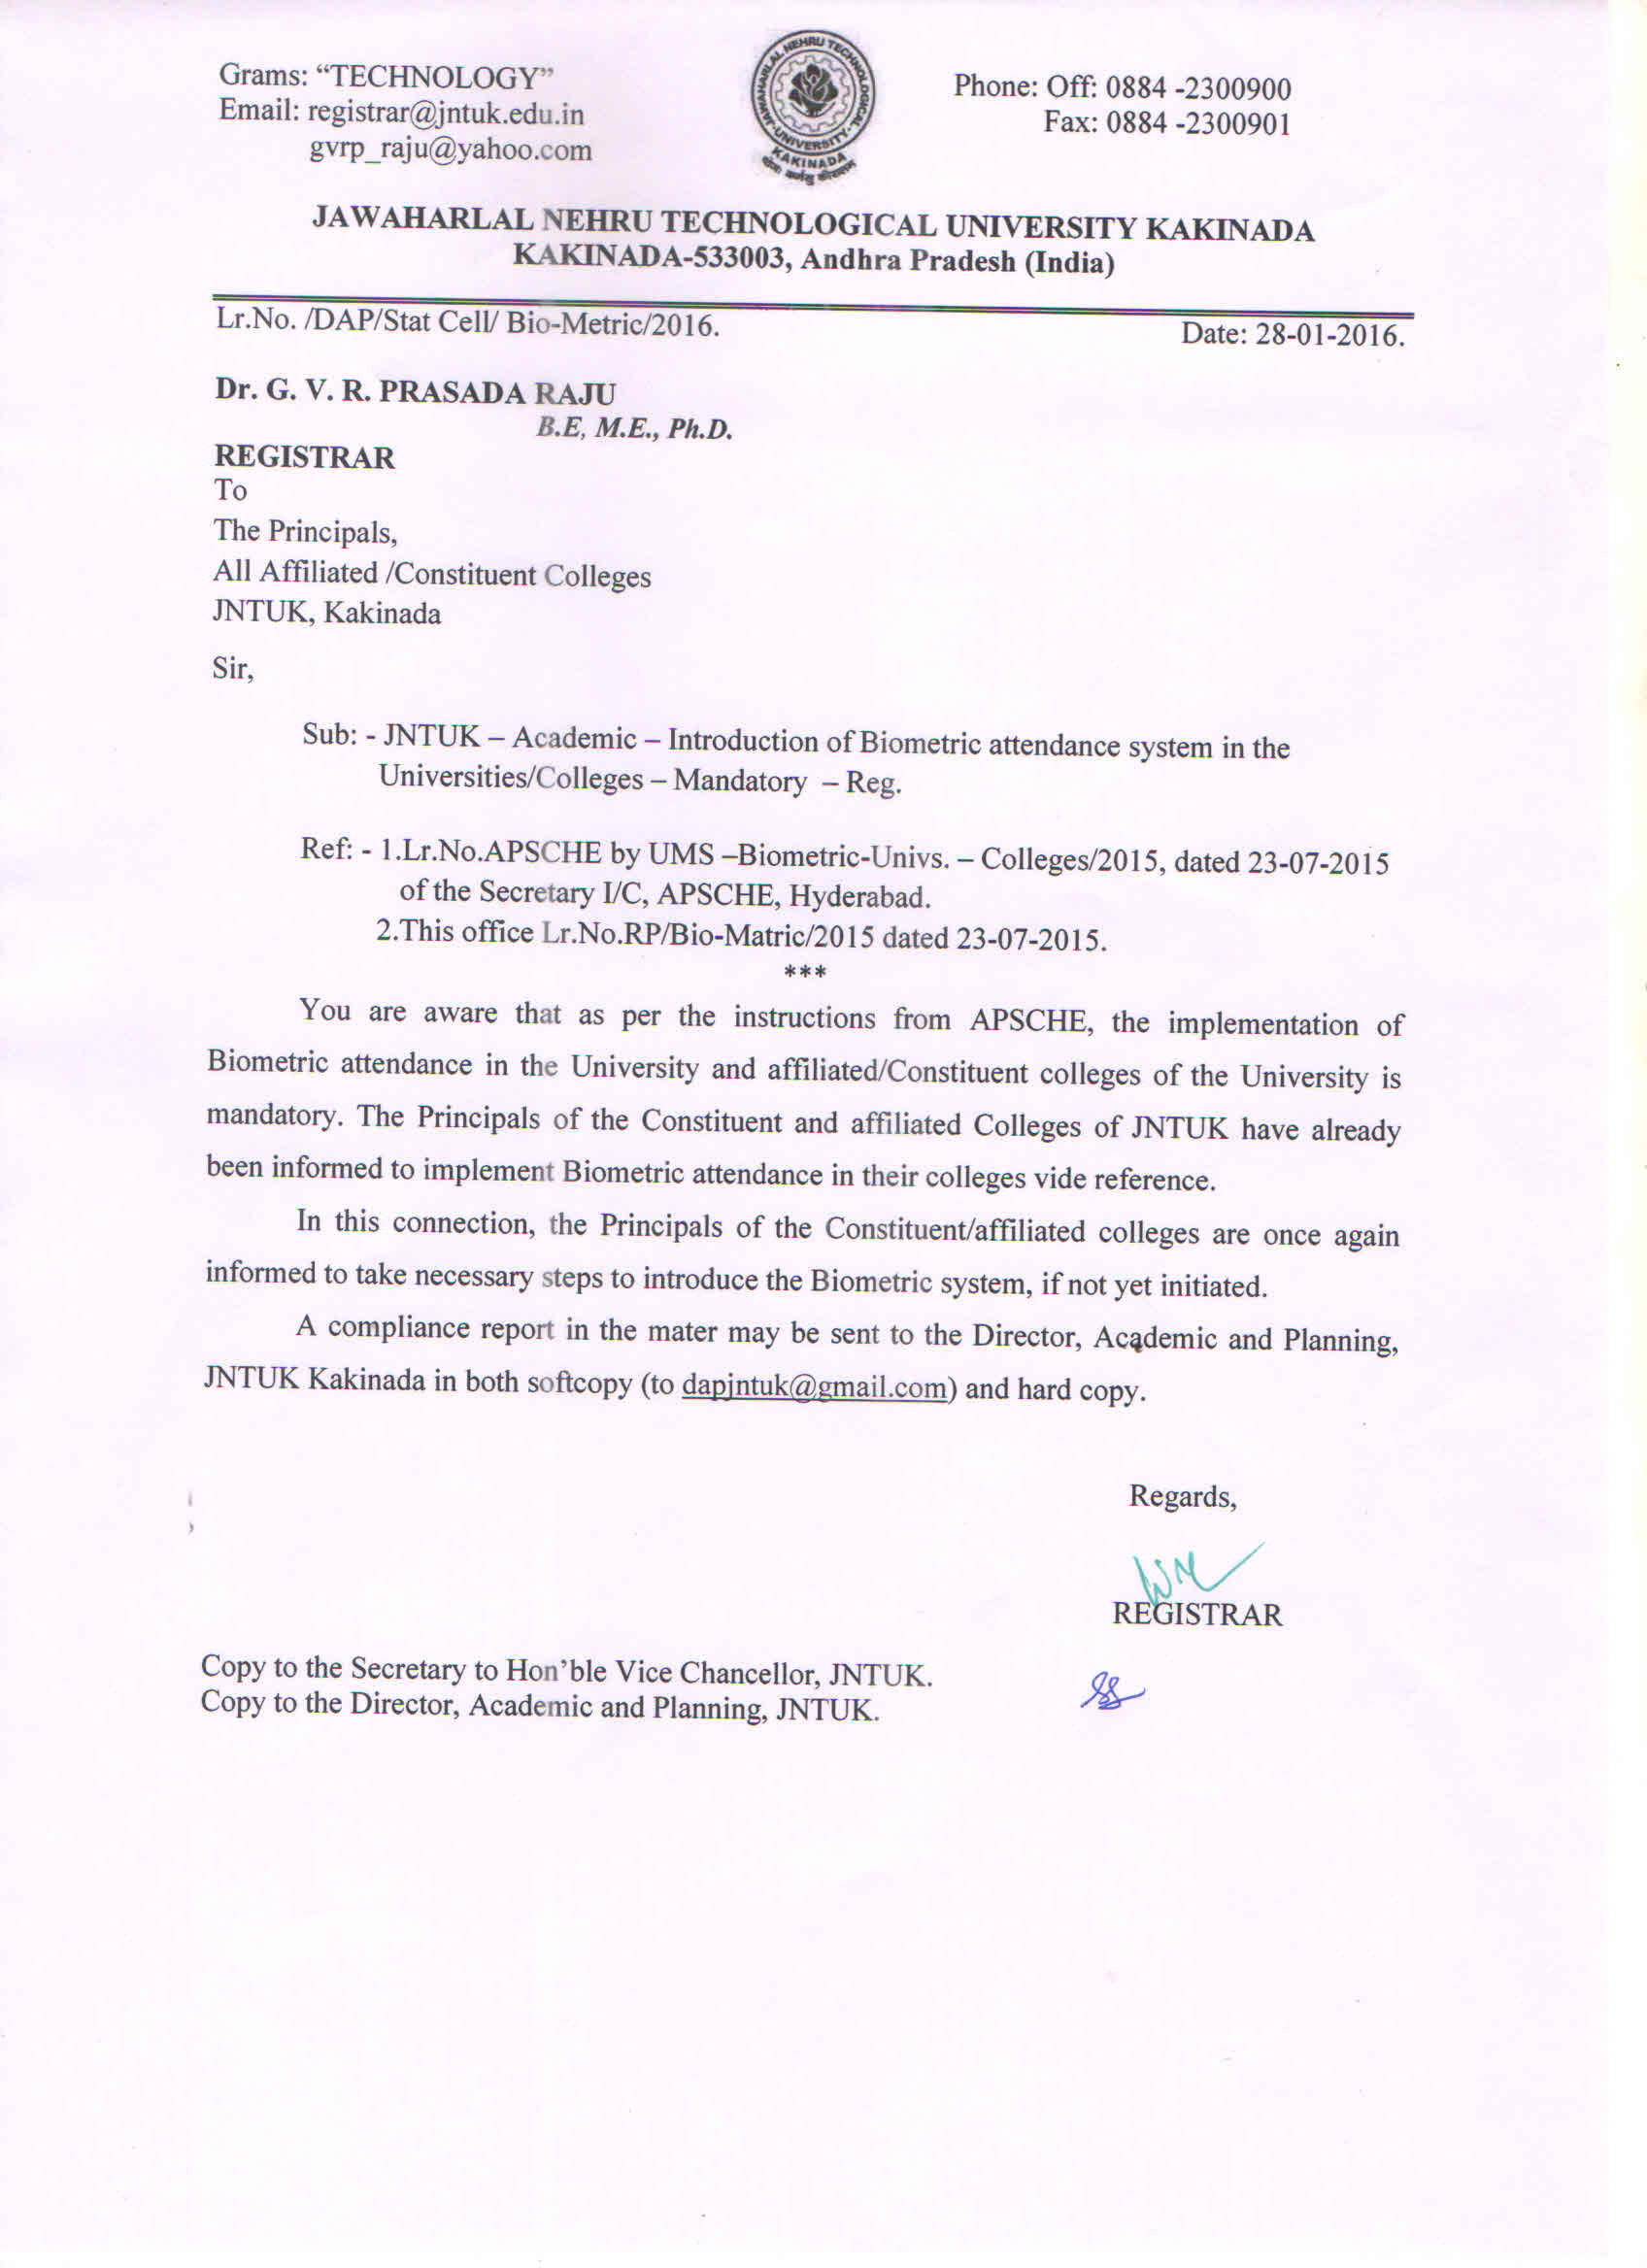 Jntuk Letter  Introduction Of BioMetric Attendance System Mandatory